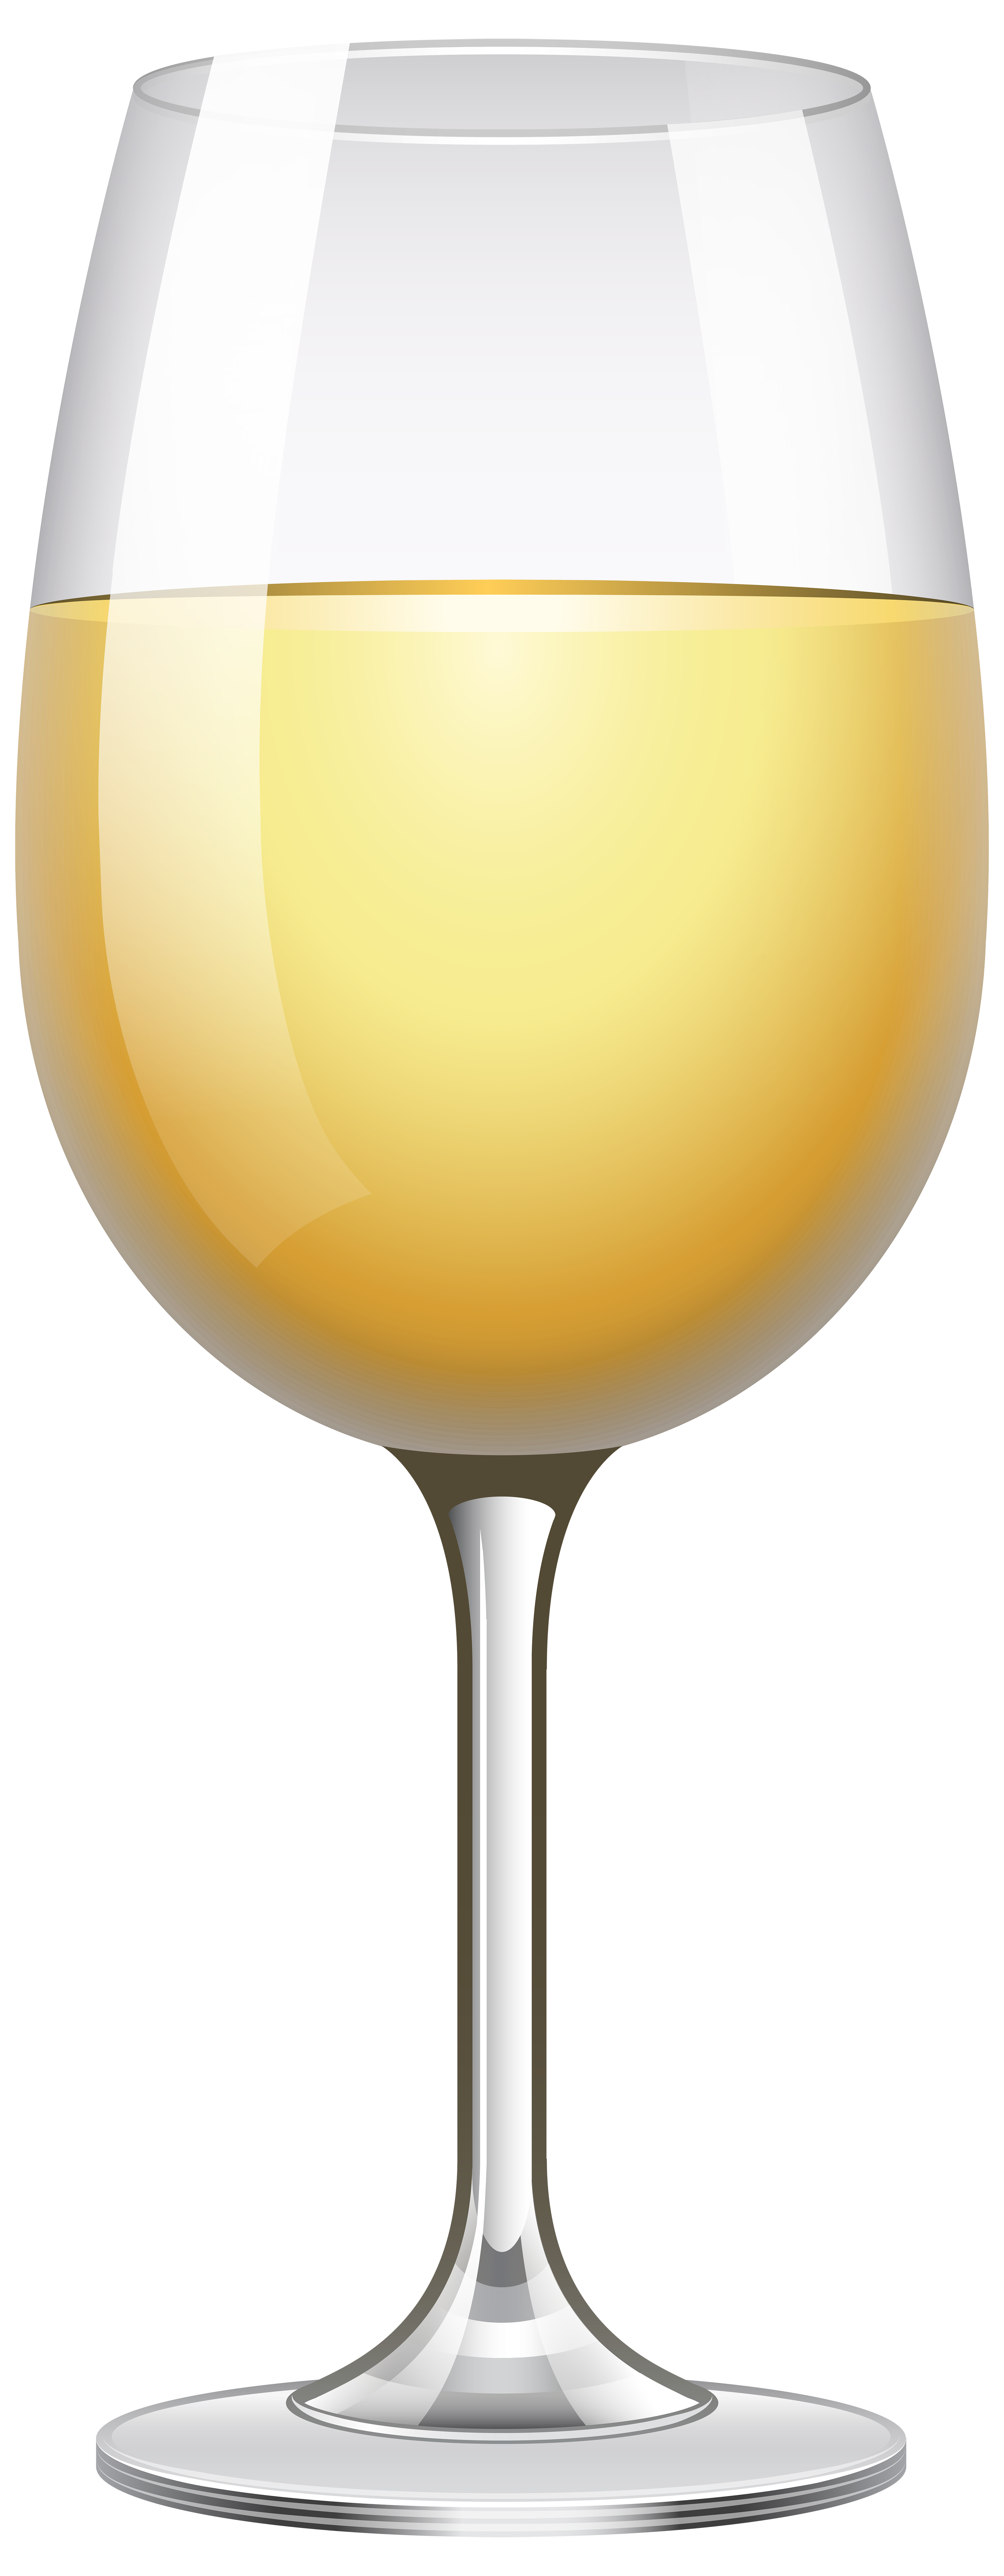 White Wine Glass Transparent PNG Clip Art Image.